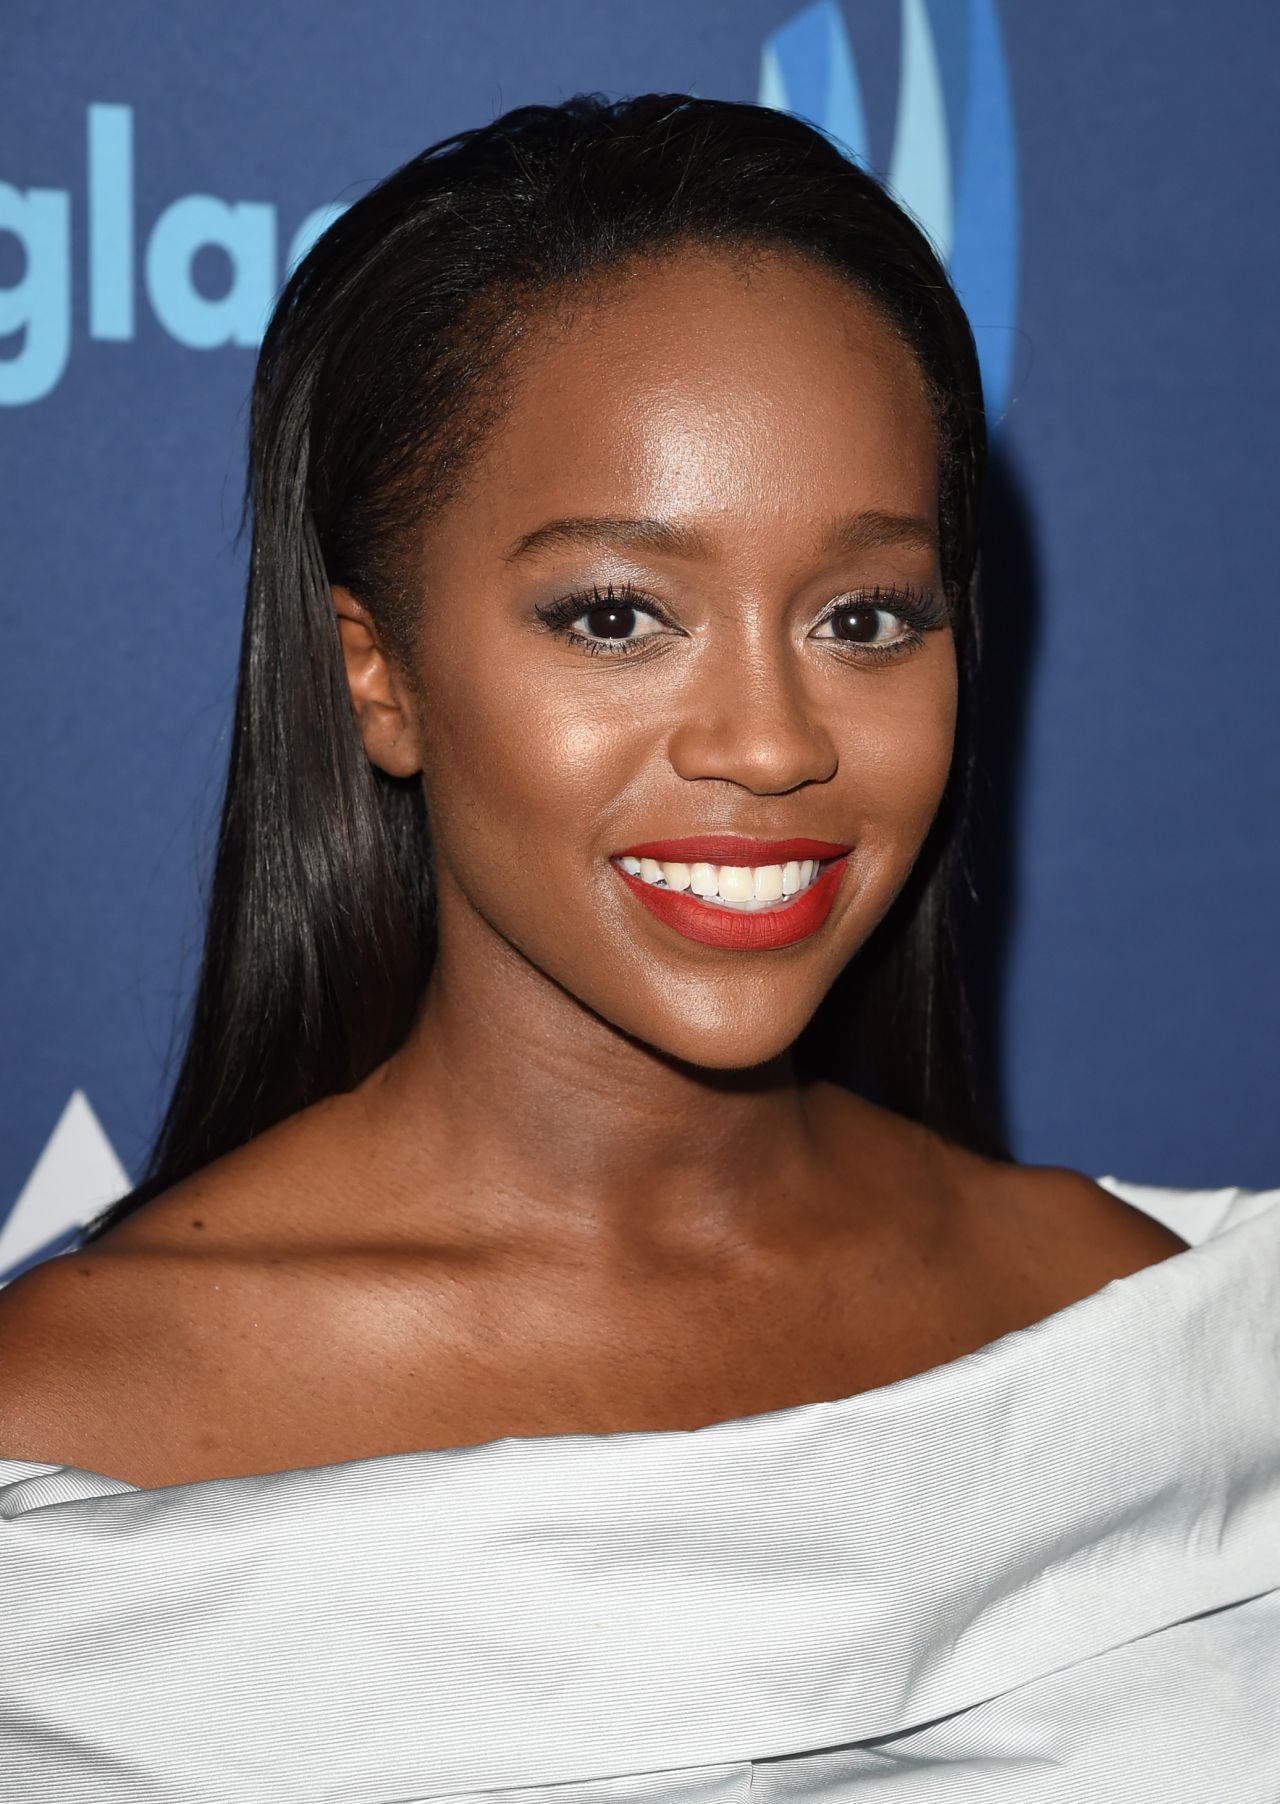 Pictures: Aja Naomi King at the 2015 GLAAD Media Awards